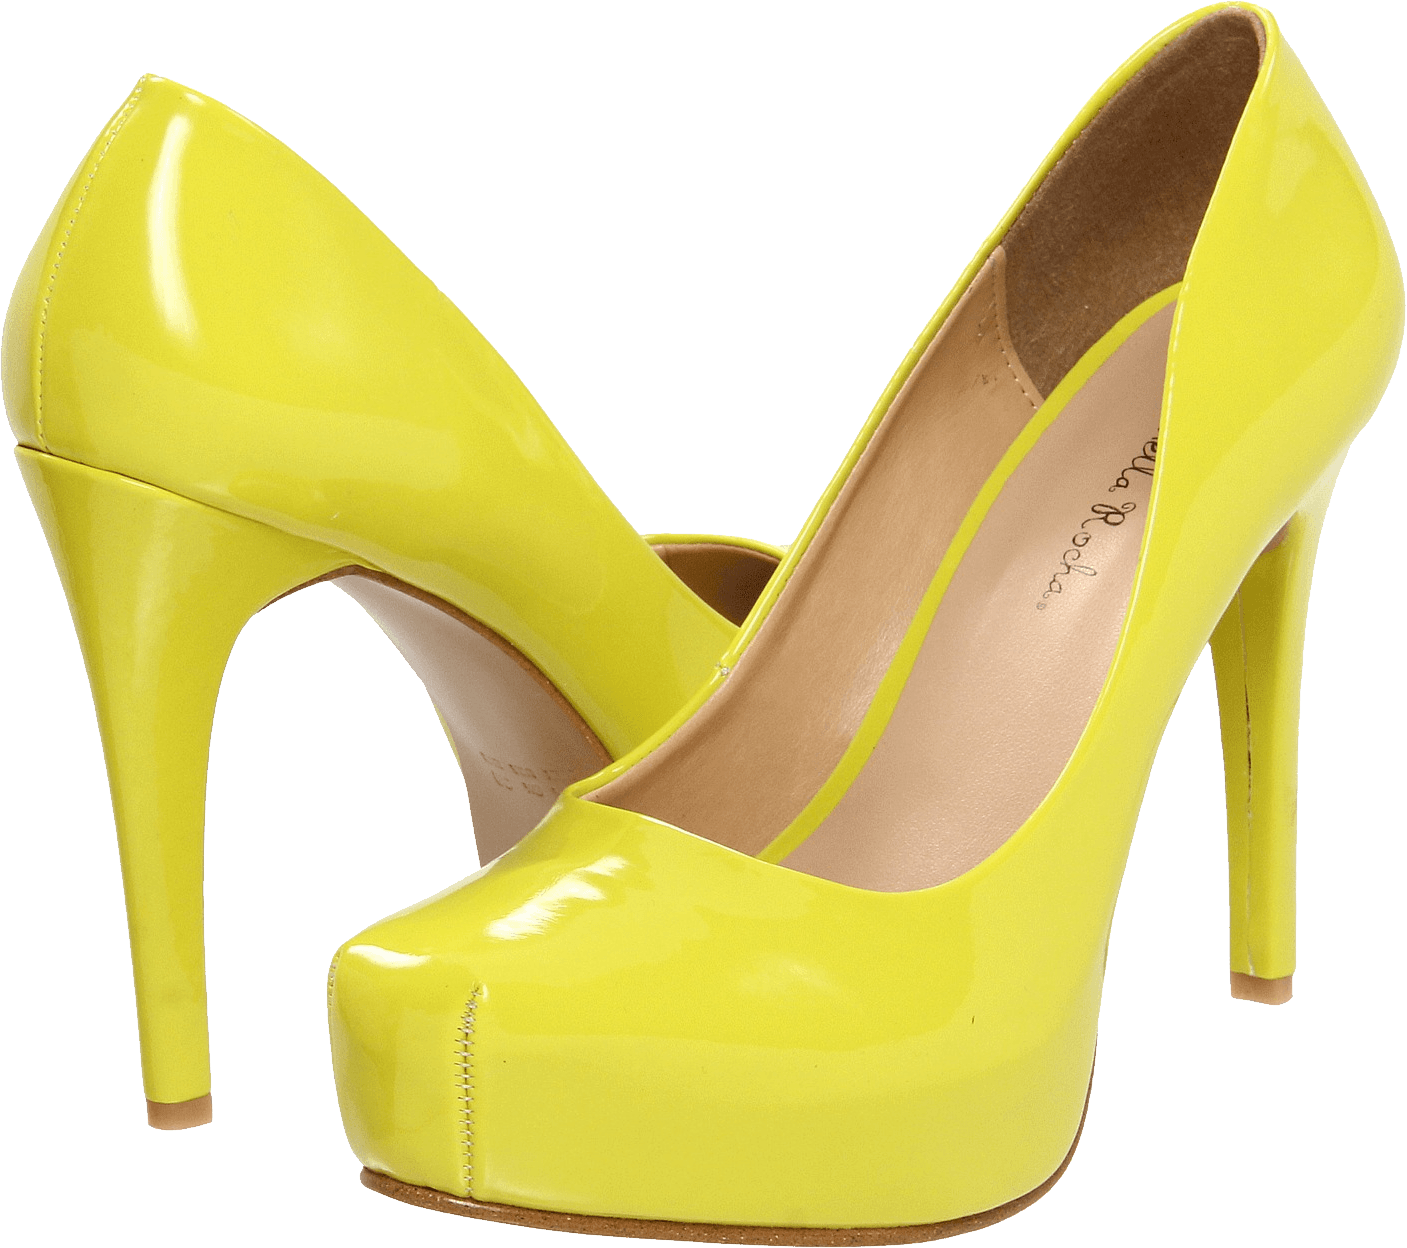 Floral shoe png. Download yellow women shoes